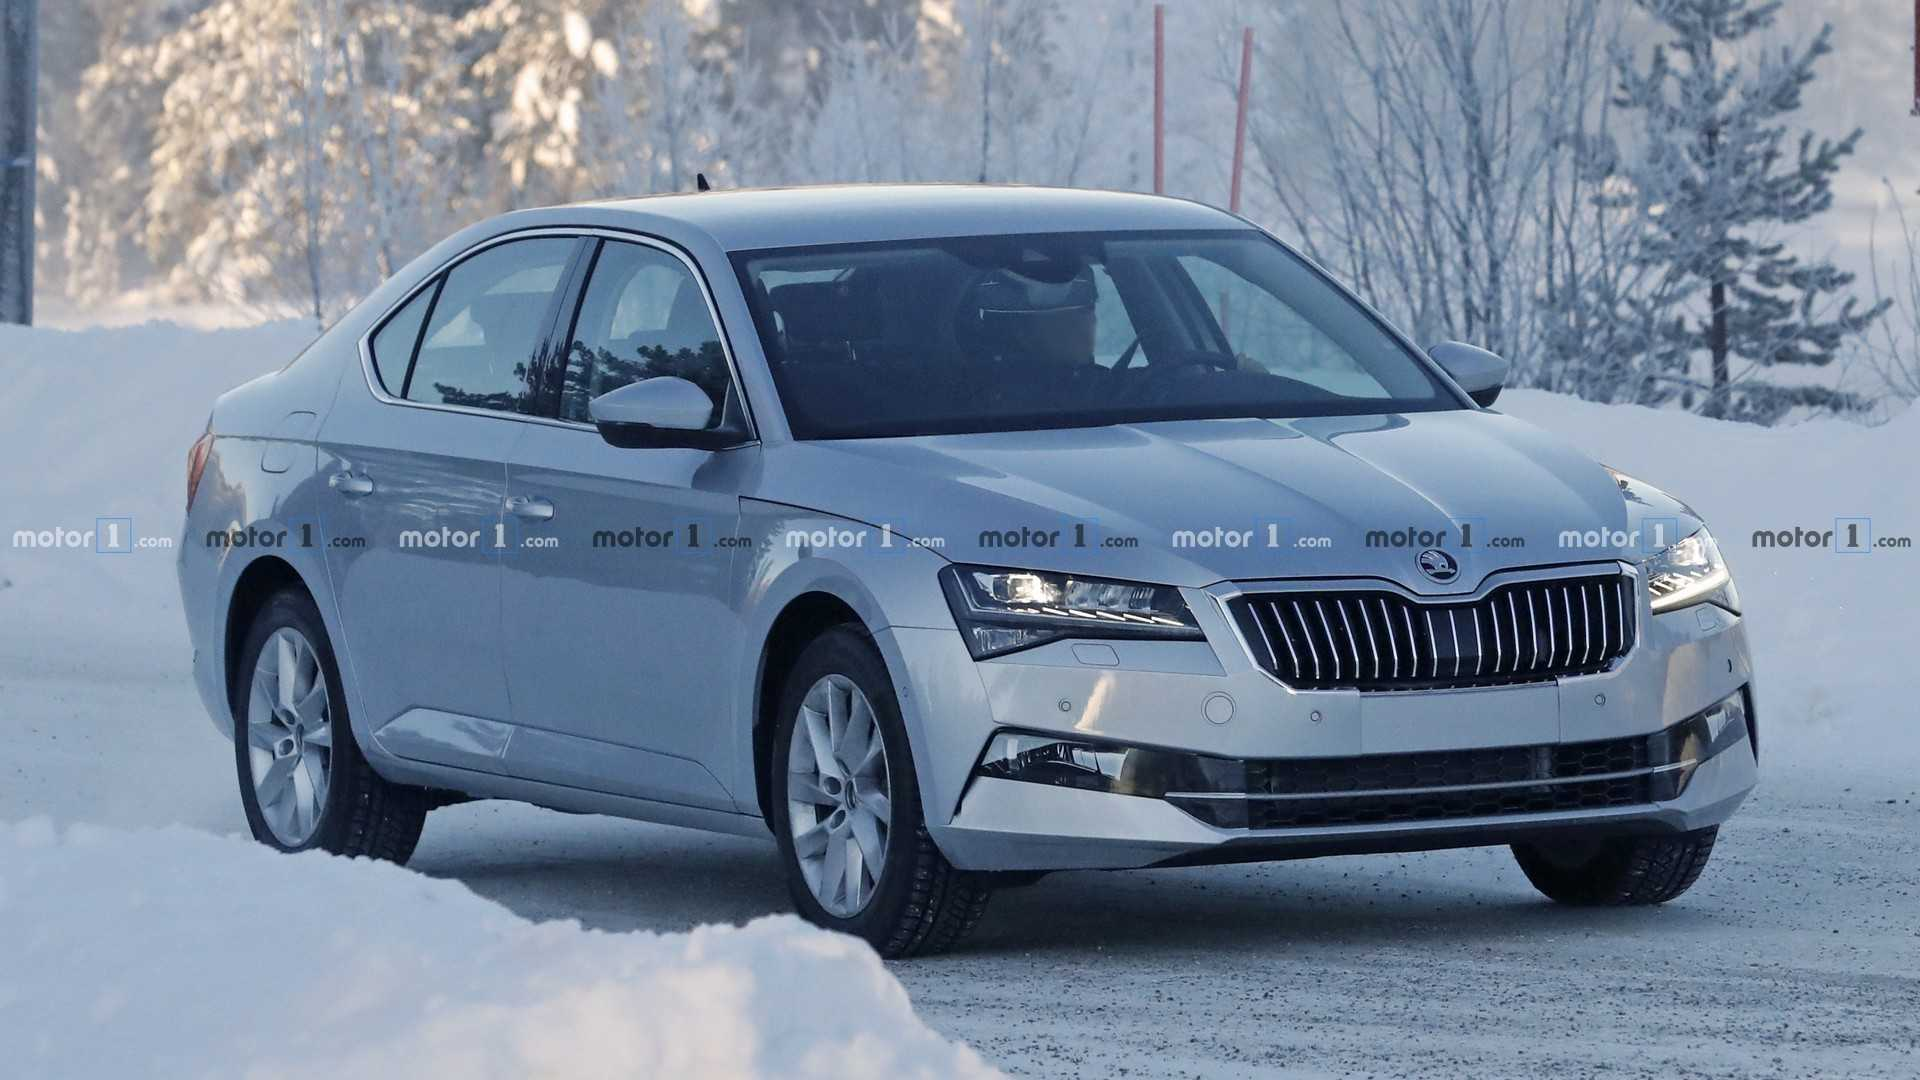 48 Best 2019 The Spy Shots Skoda Superb Review And Release Date